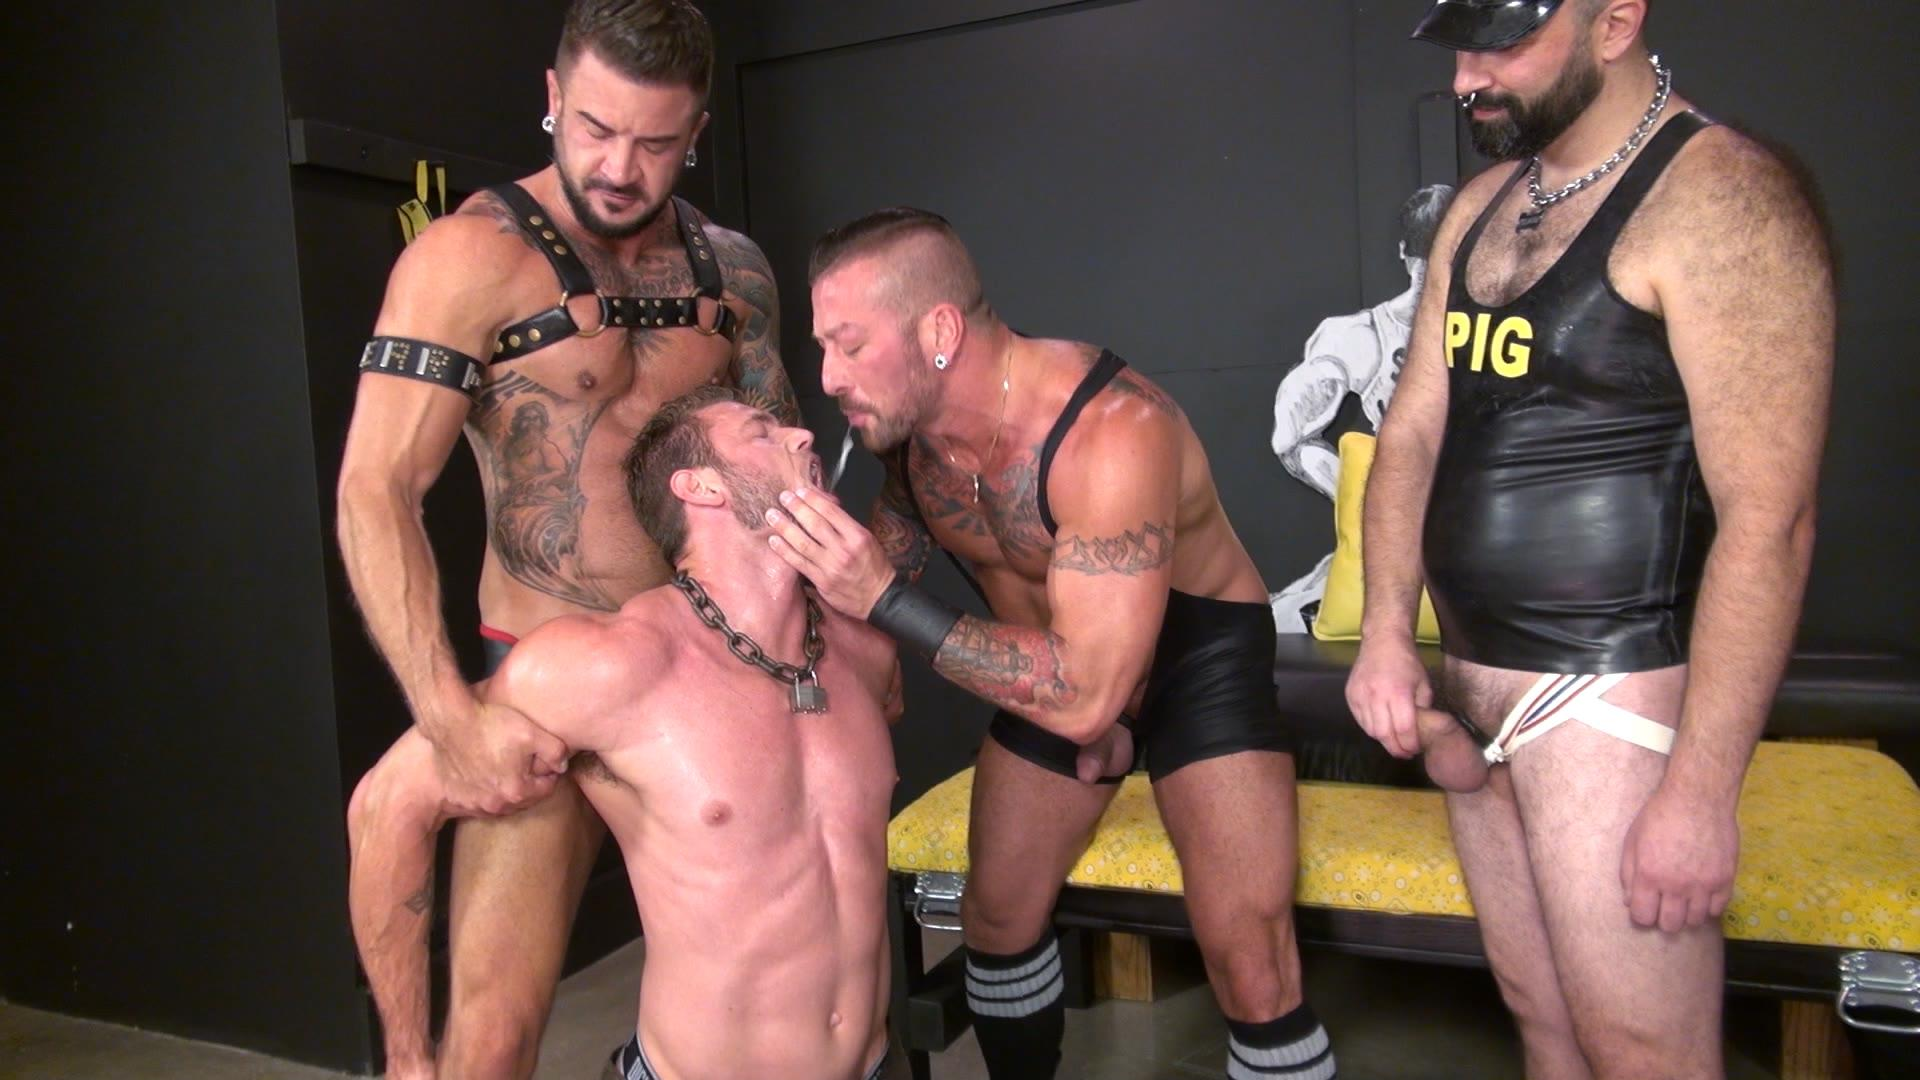 Raw and Rough Boy Fillmore Dolf Dietrich Damon Andros Hugh Hunter Ace Era Free Gay Porn 17 Bareback Fuck And Piss Party At An Underground Sex Club